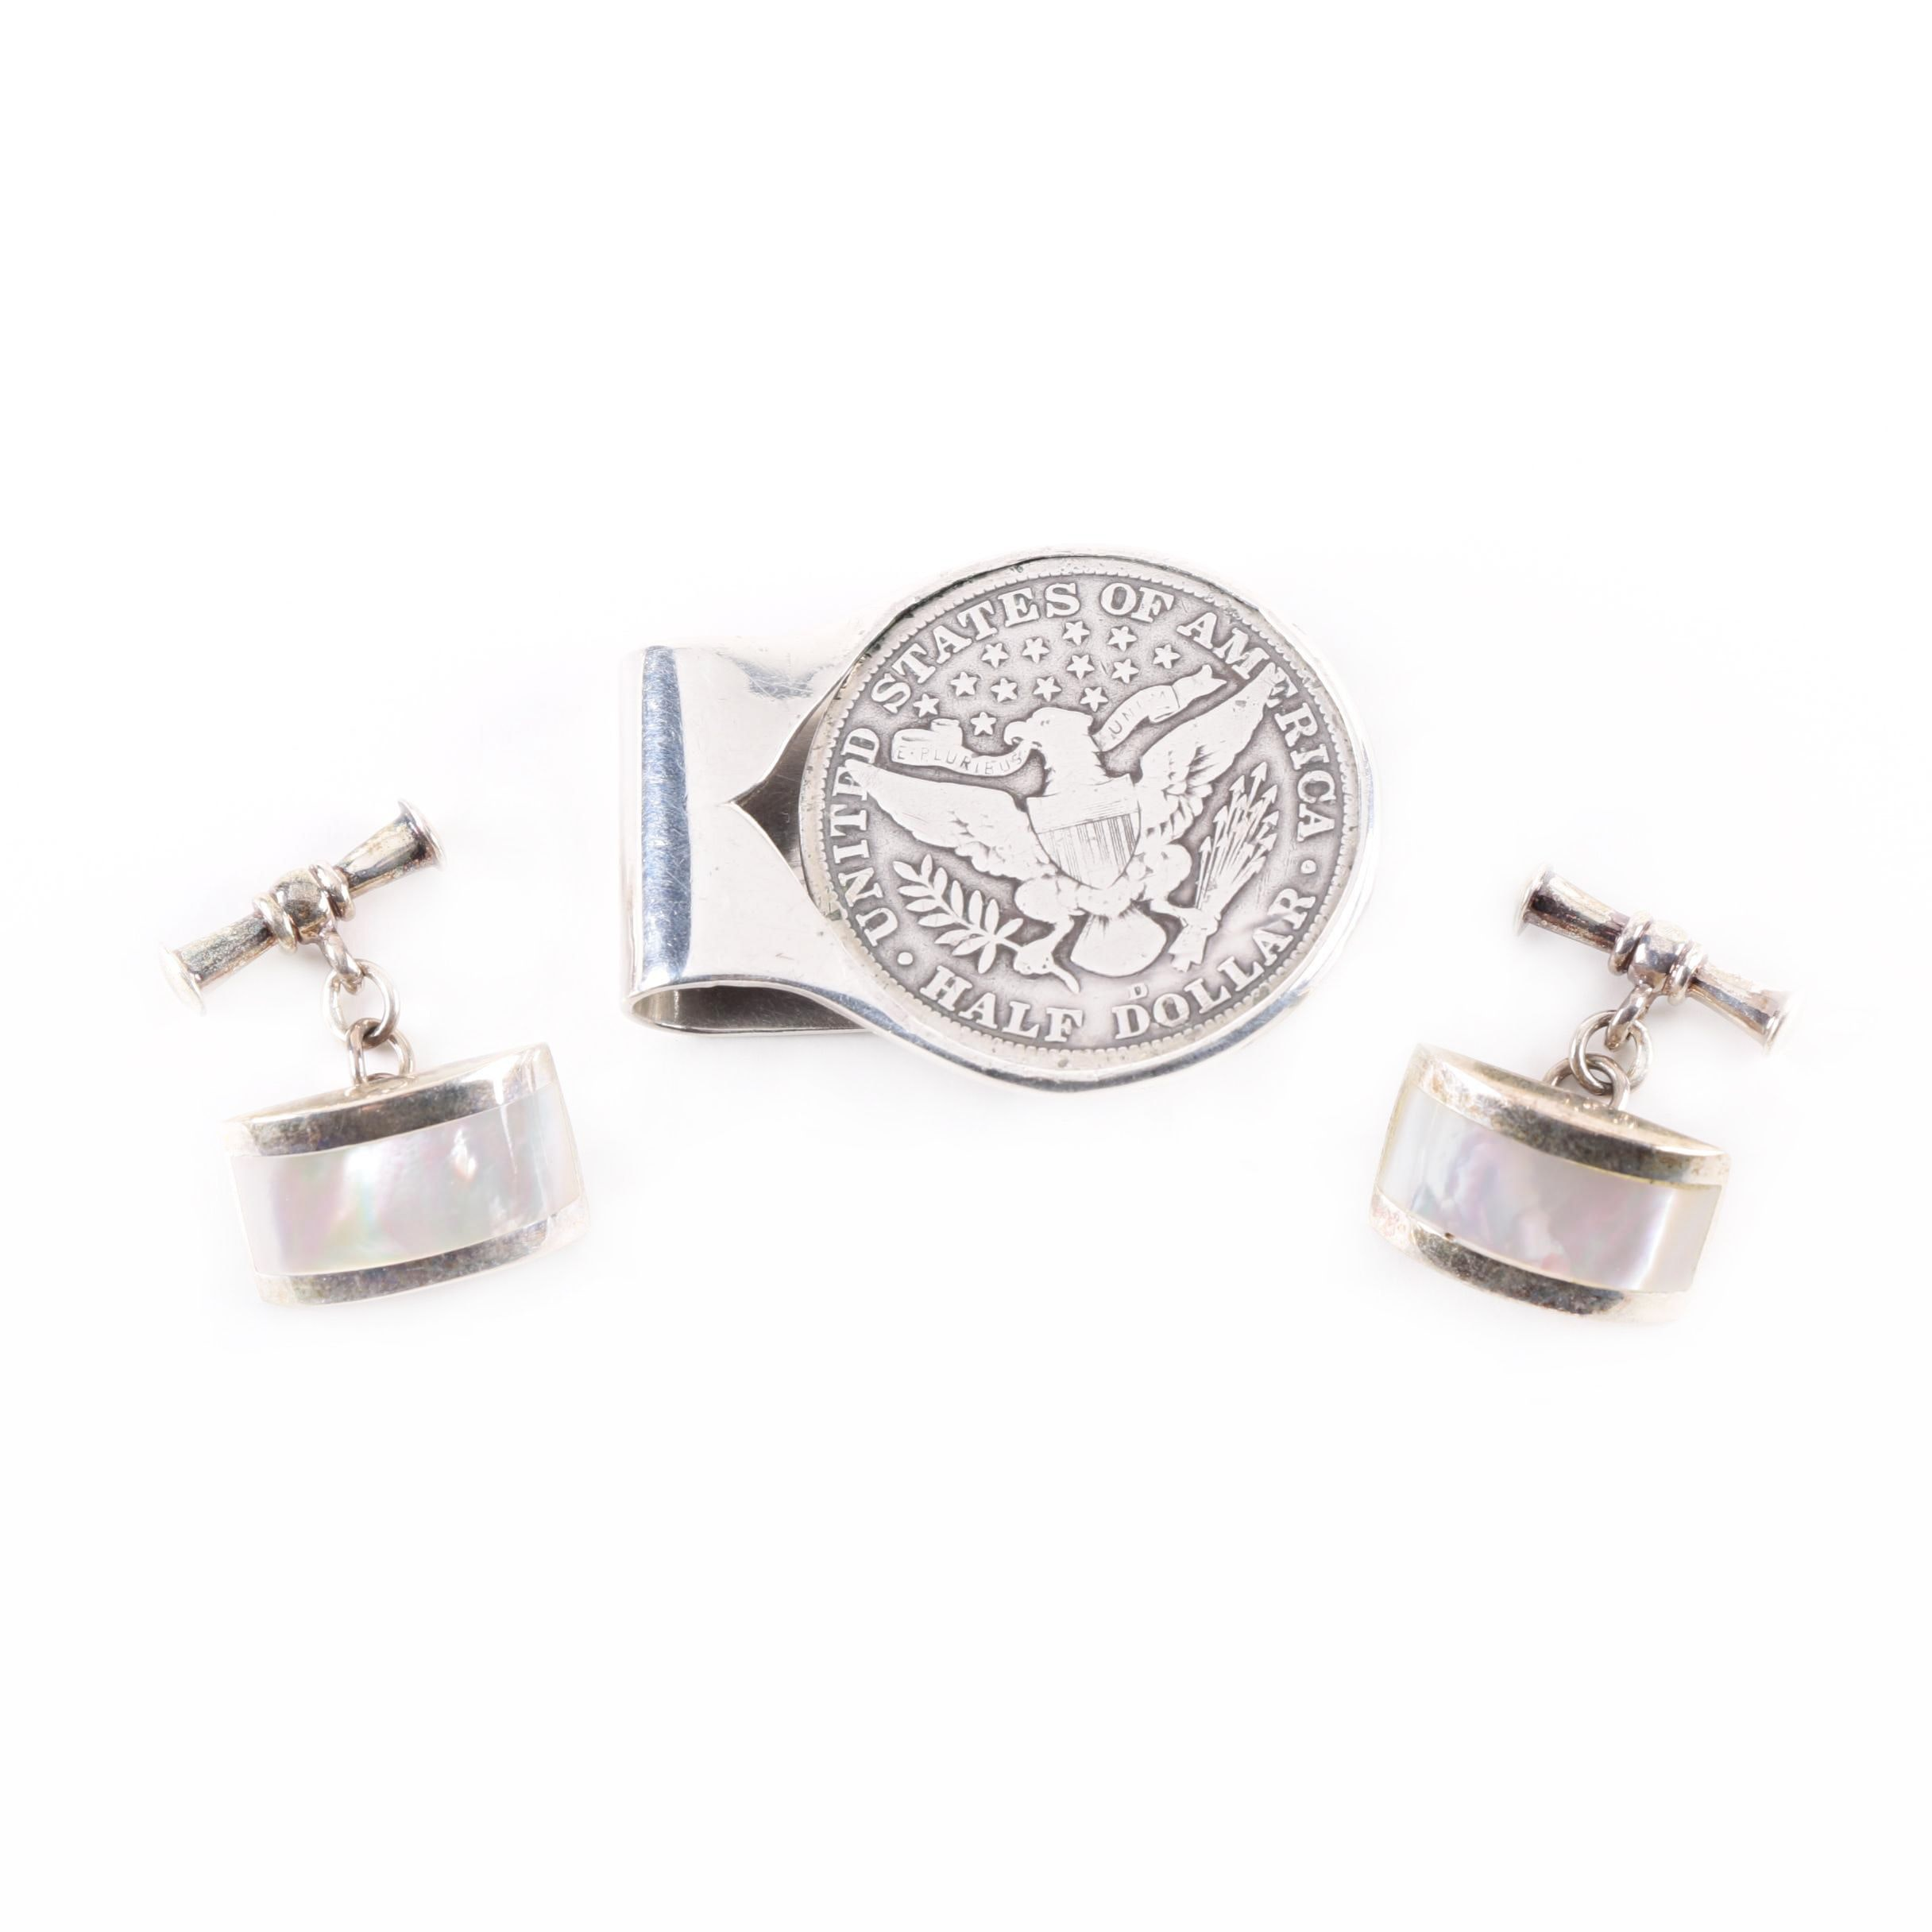 Pair of Sterling Silver Cufflinks and Money Clip